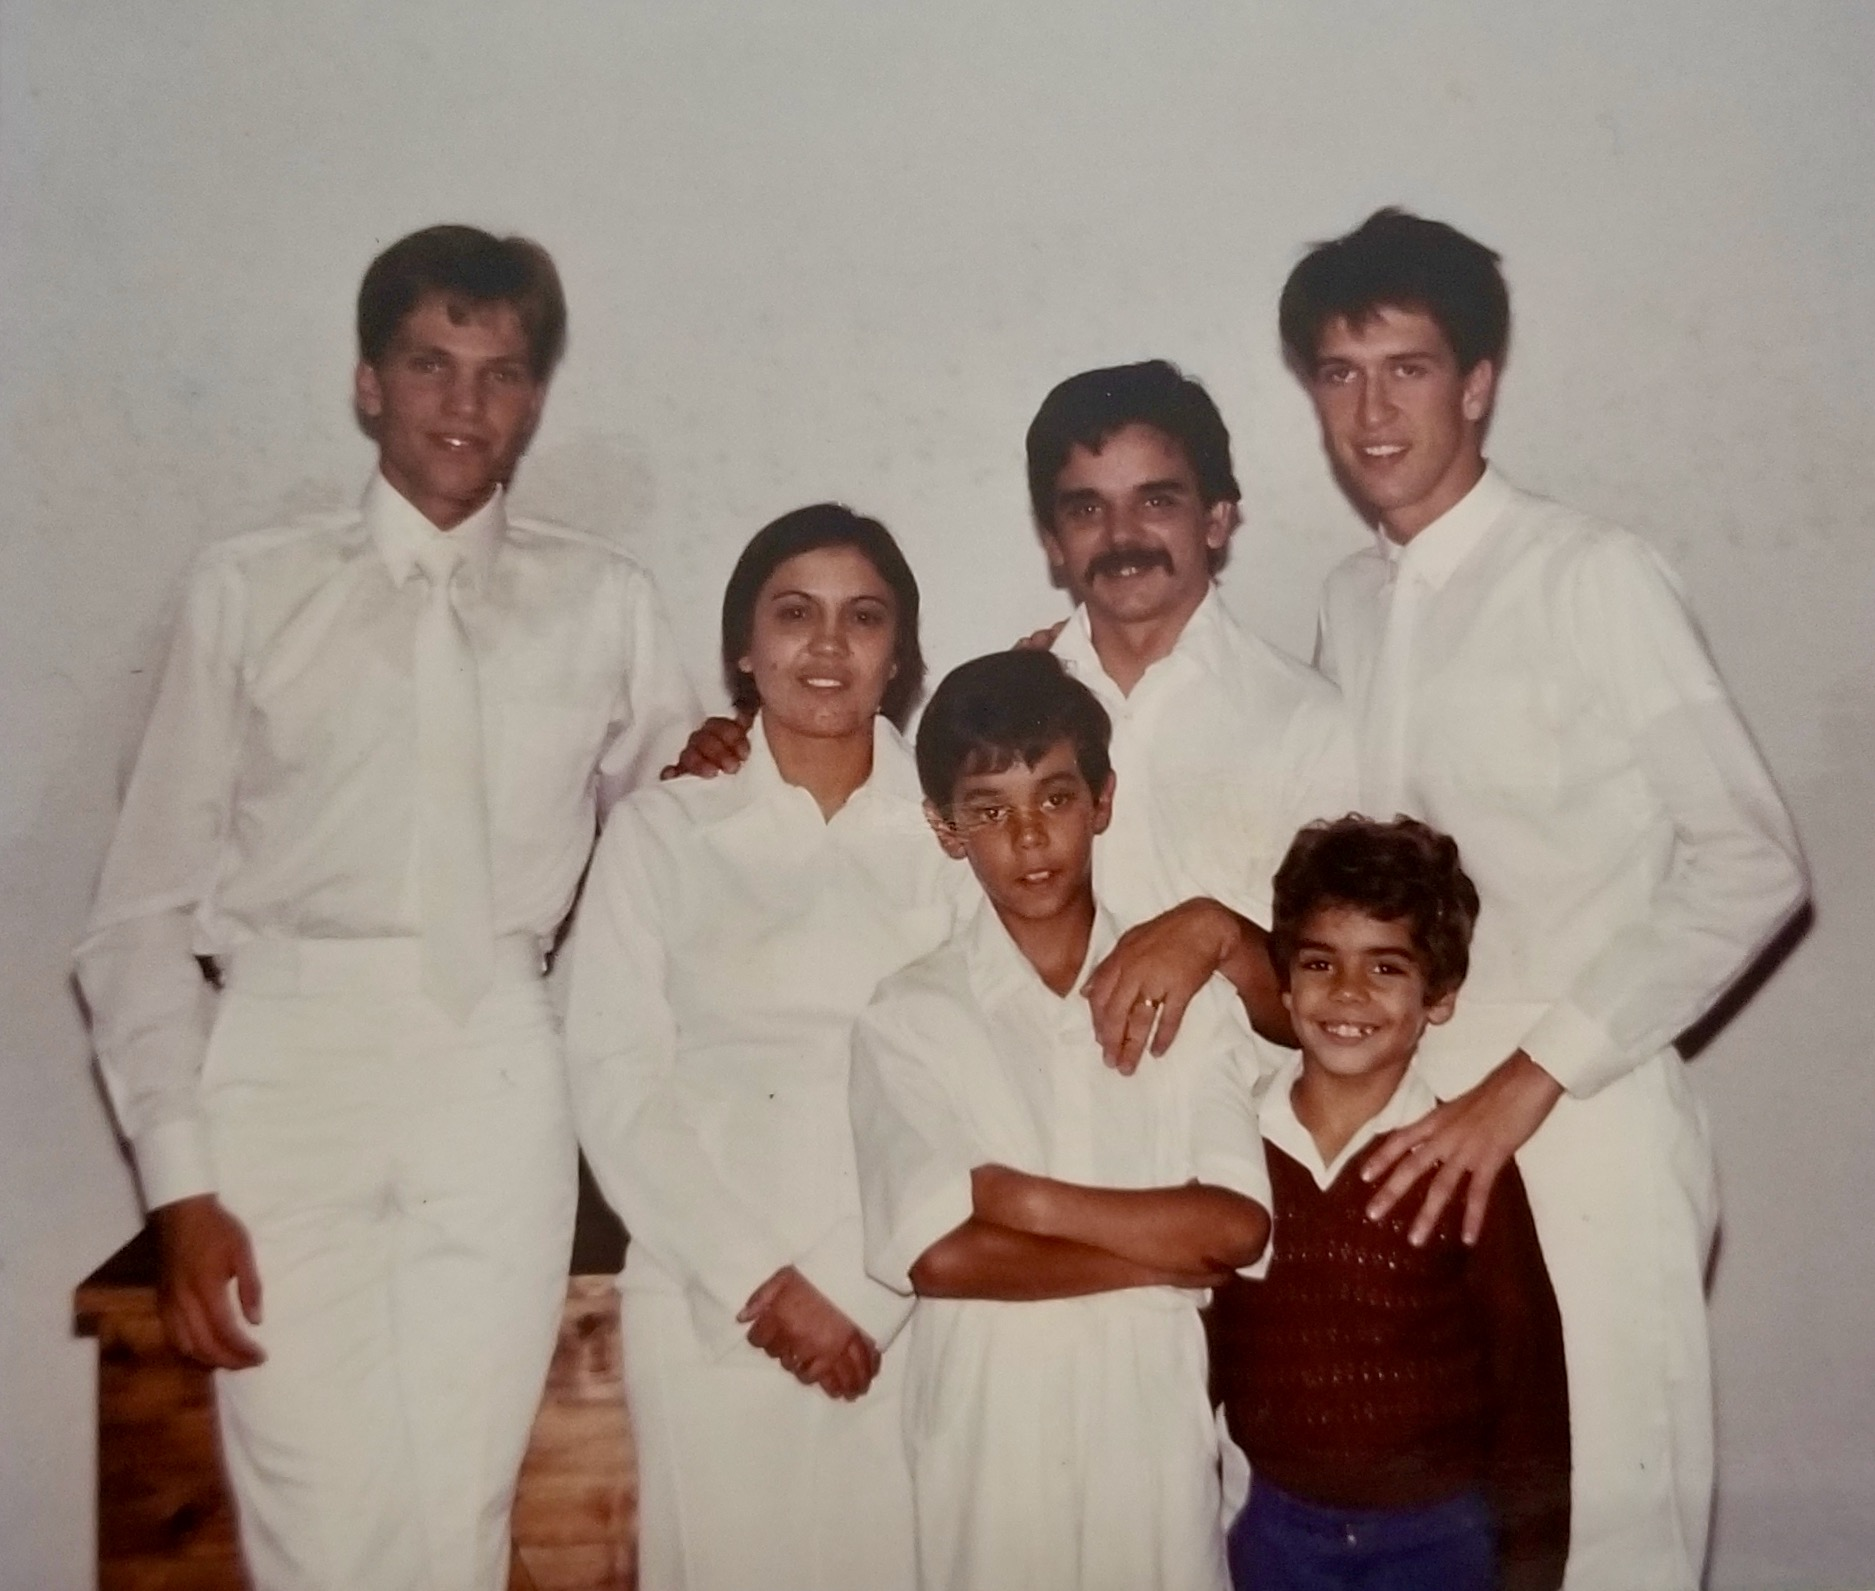 The Alves family of Angar, Terceira Island, on their baptism day in 1985 in Angar, São Miguel Island of the Azores. Luís Alves is second from the right, his wife, Nair Alves is second from their left, with the two sons Herberto and Paulo, lower right.